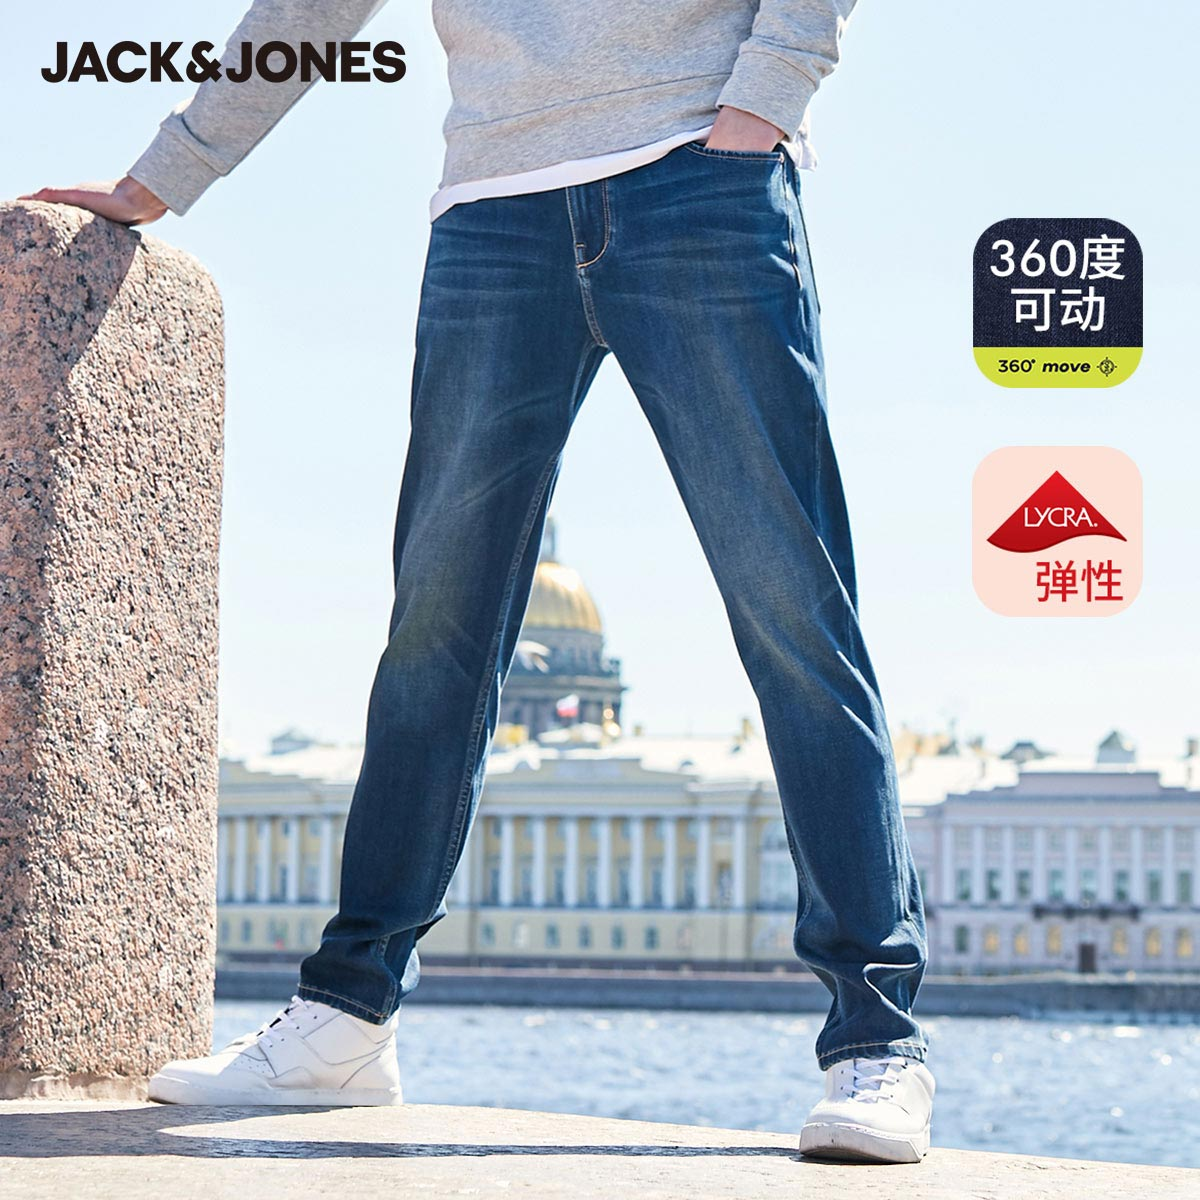 Jack Jones, Jack Jones, men's spring and summer new elastic fit, small feet, all-around fashion street jeans pants